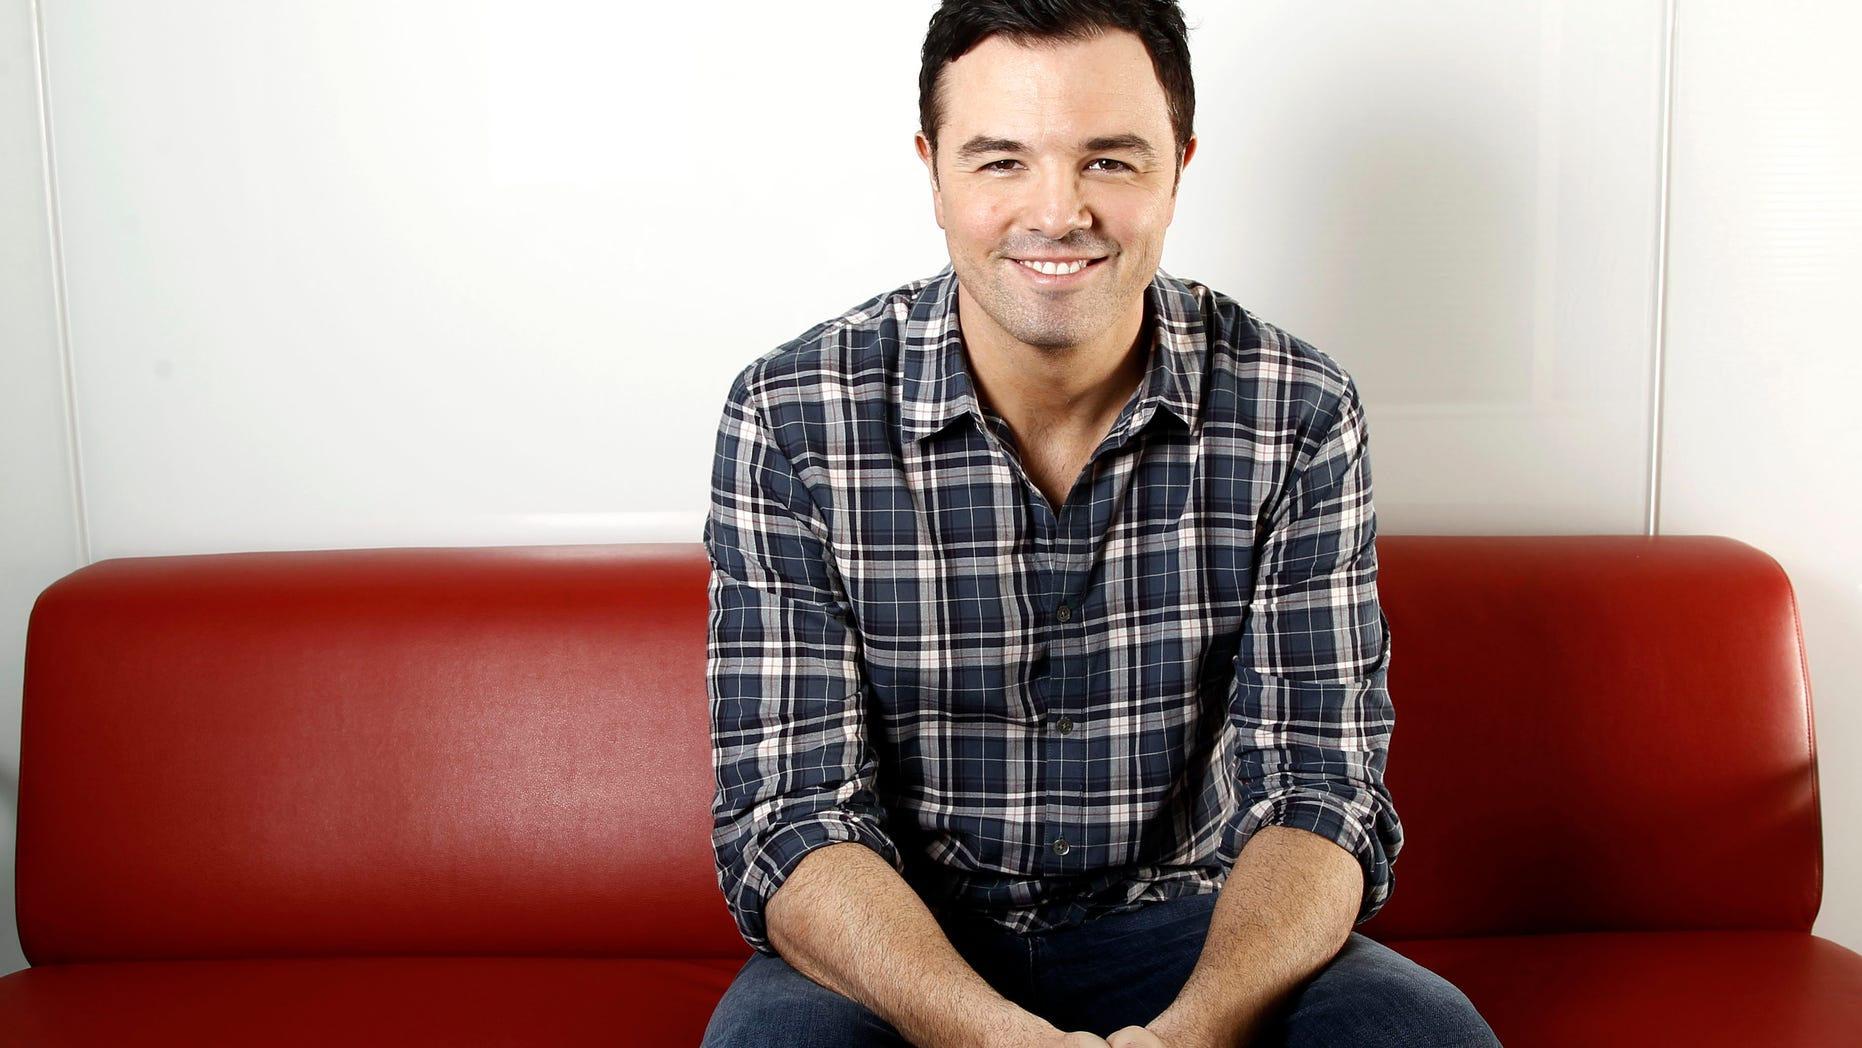 "FILE - This Oct. 1, 2011 file photo shows Seth MacFarlane in Los Angeles. NBC announced Wednesday, Aug. 29, 2012, that Seth MacFarlane will host""Saturday Night Live"" for its 38th season premiere on Sept. 15. Musical guest will be Frank Ocean. The multitalented MacFarlane created the Fox series ""Family Guy"" and serves as writer, producer and voice artist on the show. He recently directed his first feature film, ""Ted,"" and furnished the voice for its teddy-bear title character. (AP Photo/Matt Sayles, file)"